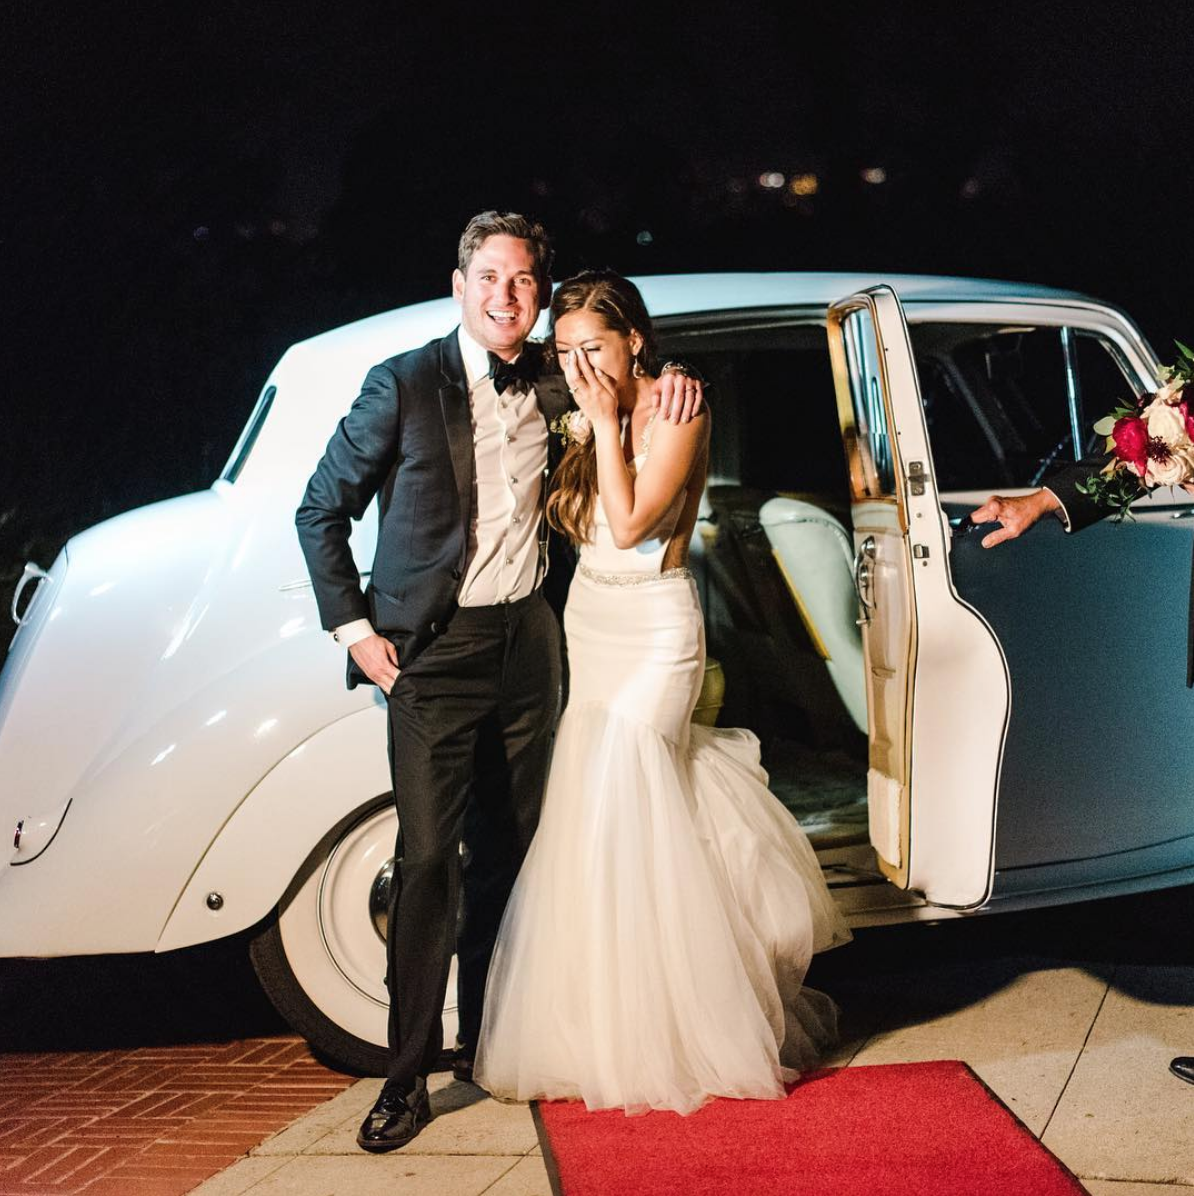 Rental Time! - Now it's the fun part! Whether you are driving the car, using the car for a photo shoot, or are being transported after the wedding ceremony – always abide by the car owner's rules and guidelines.Photo: @sanazphotography